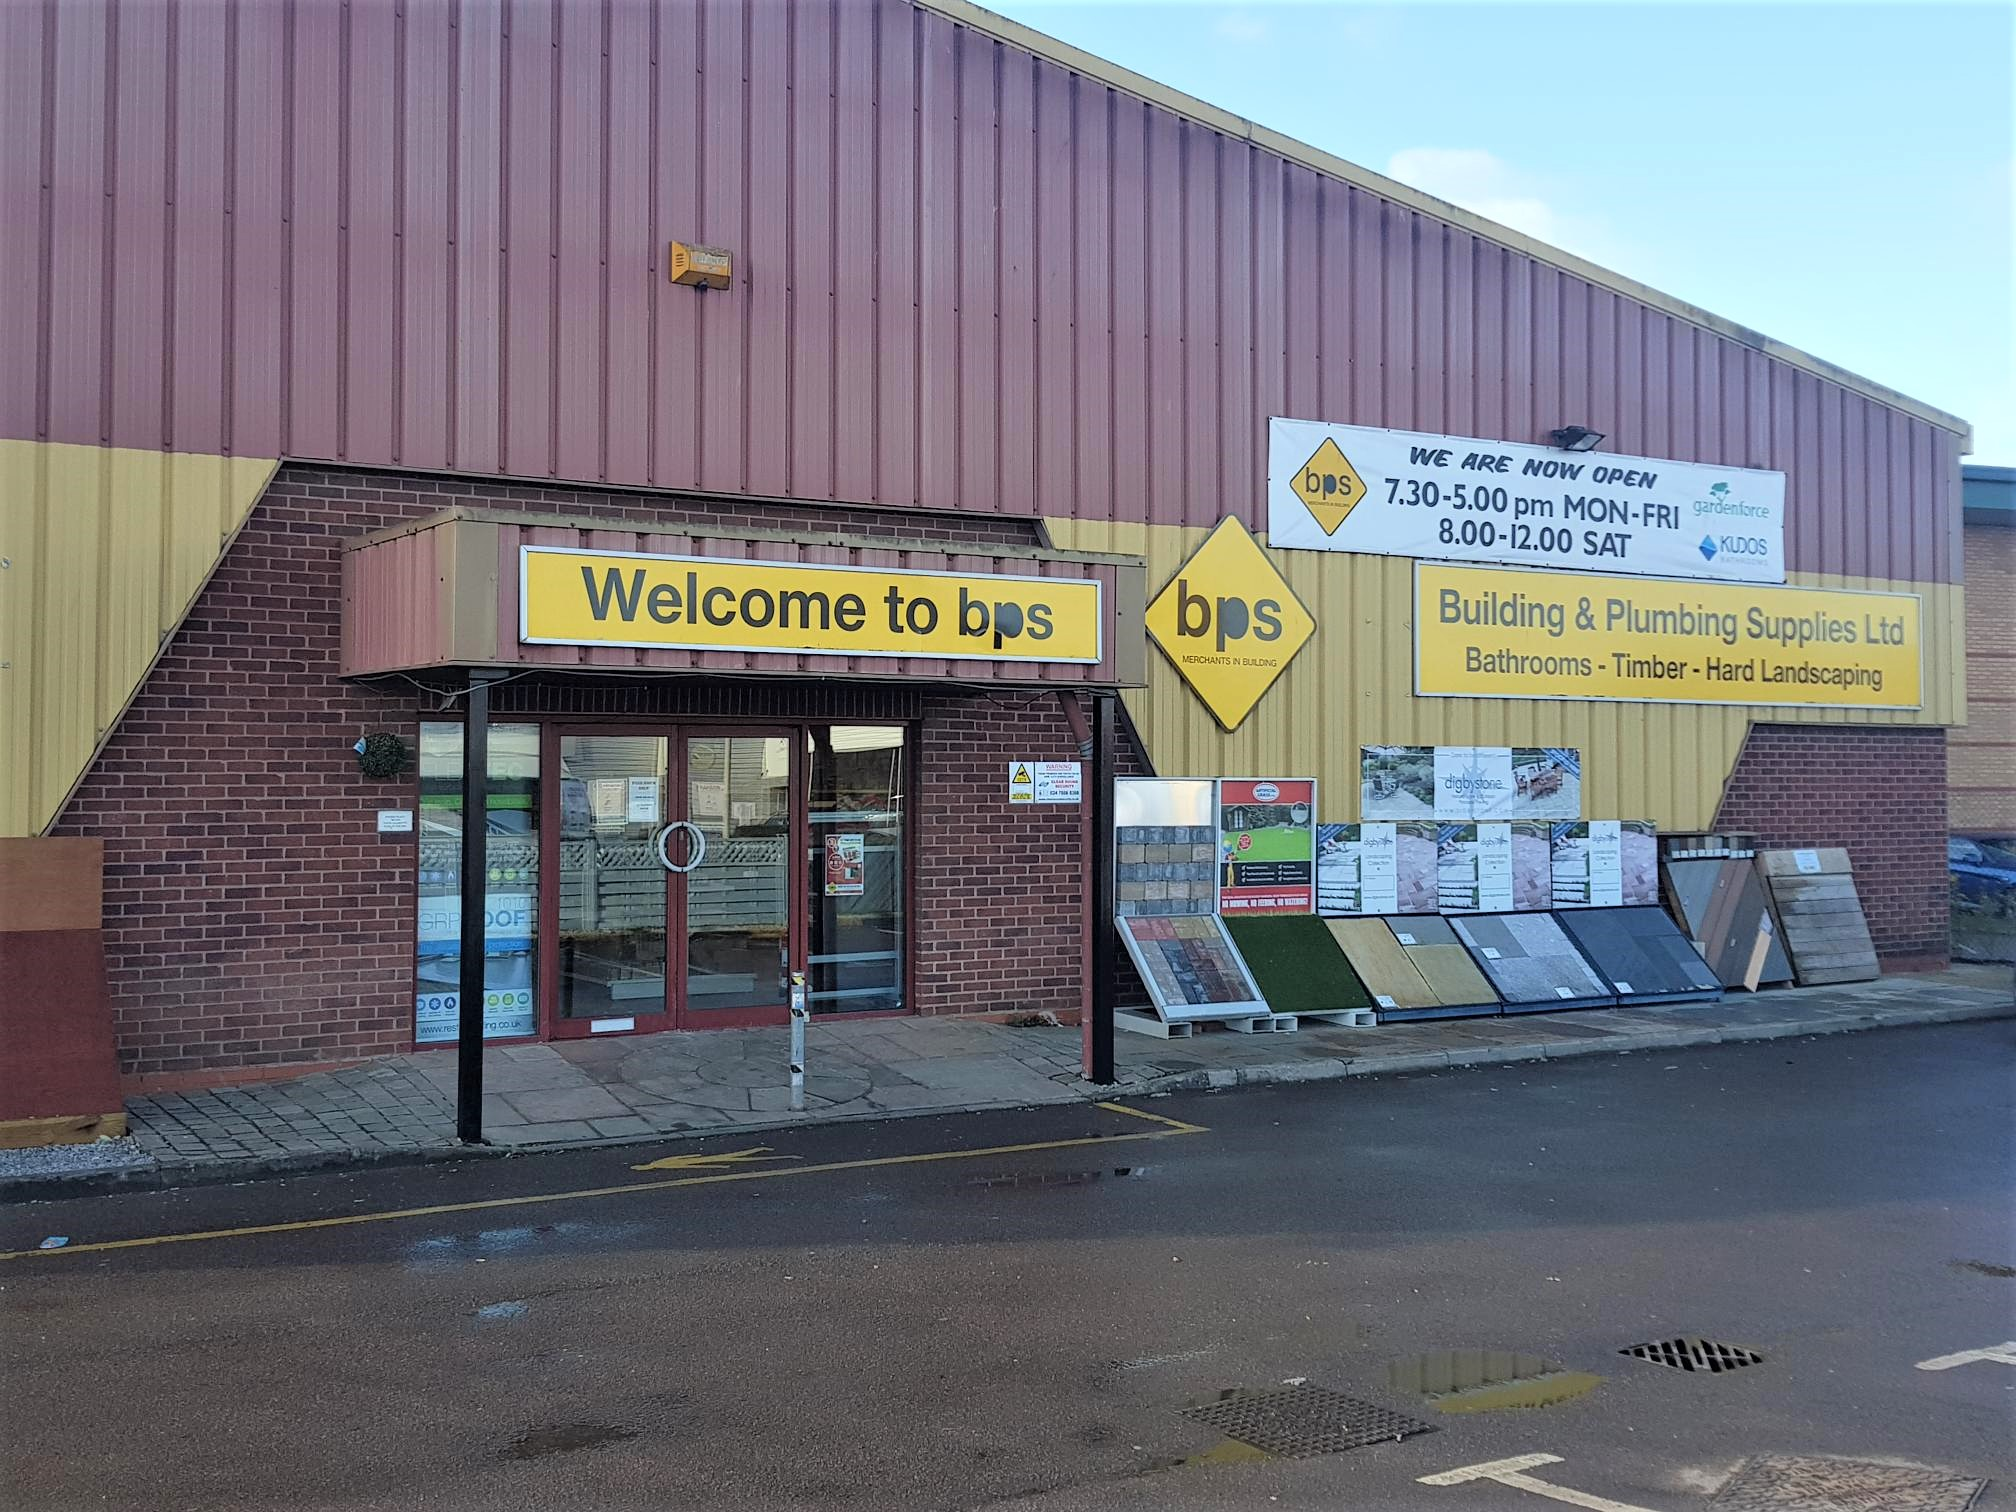 Tewkesbury branch images